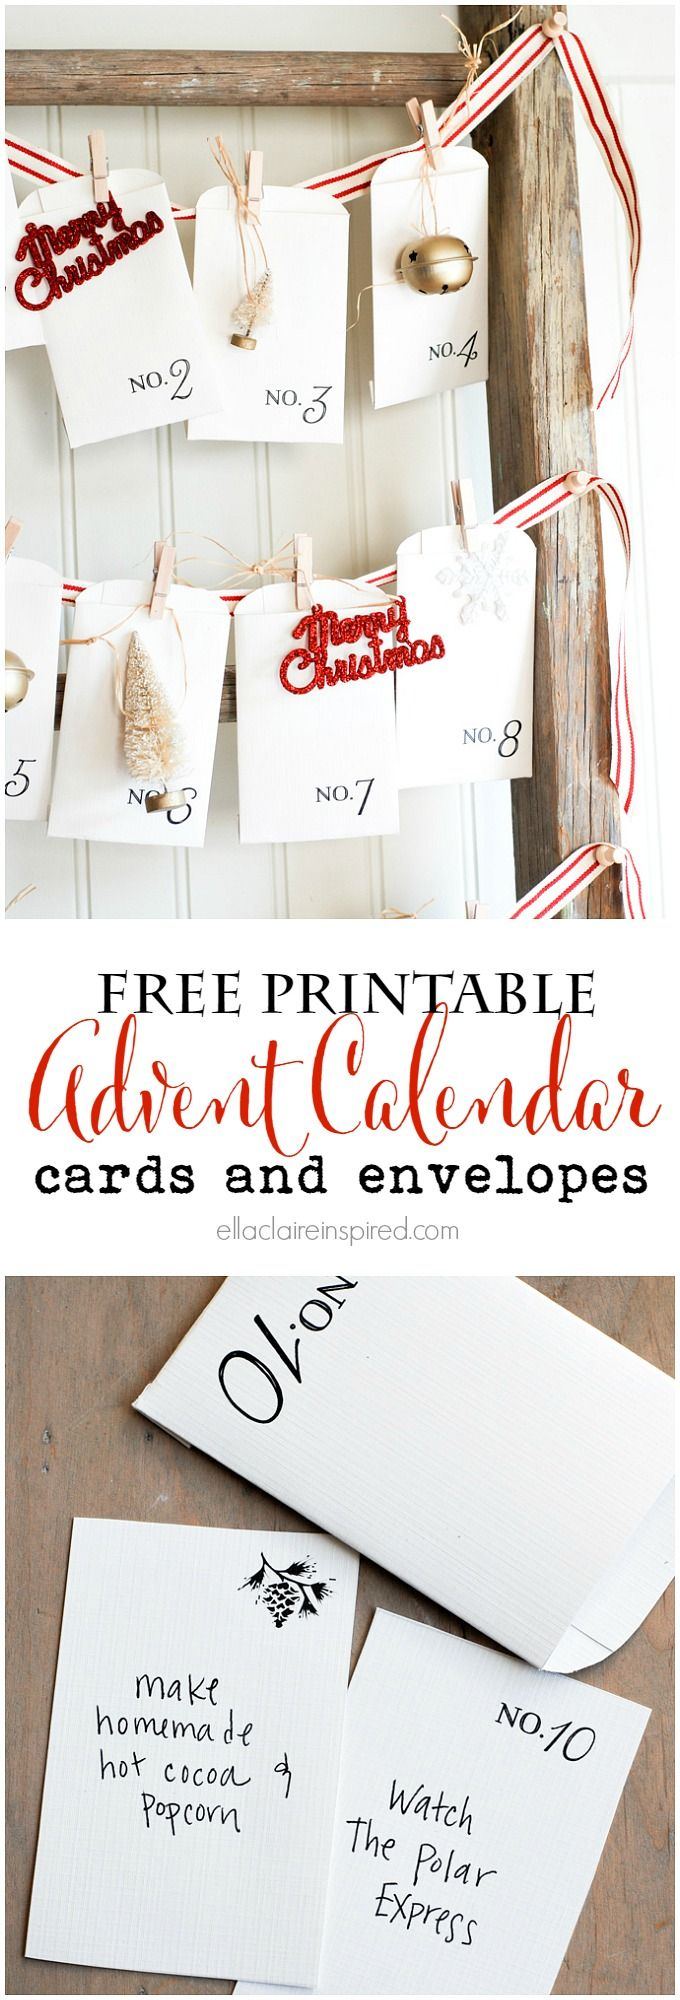 Free Printable Vintage-Inspired Advent Calendar  cards and envelopes. I love vintage Christmas!